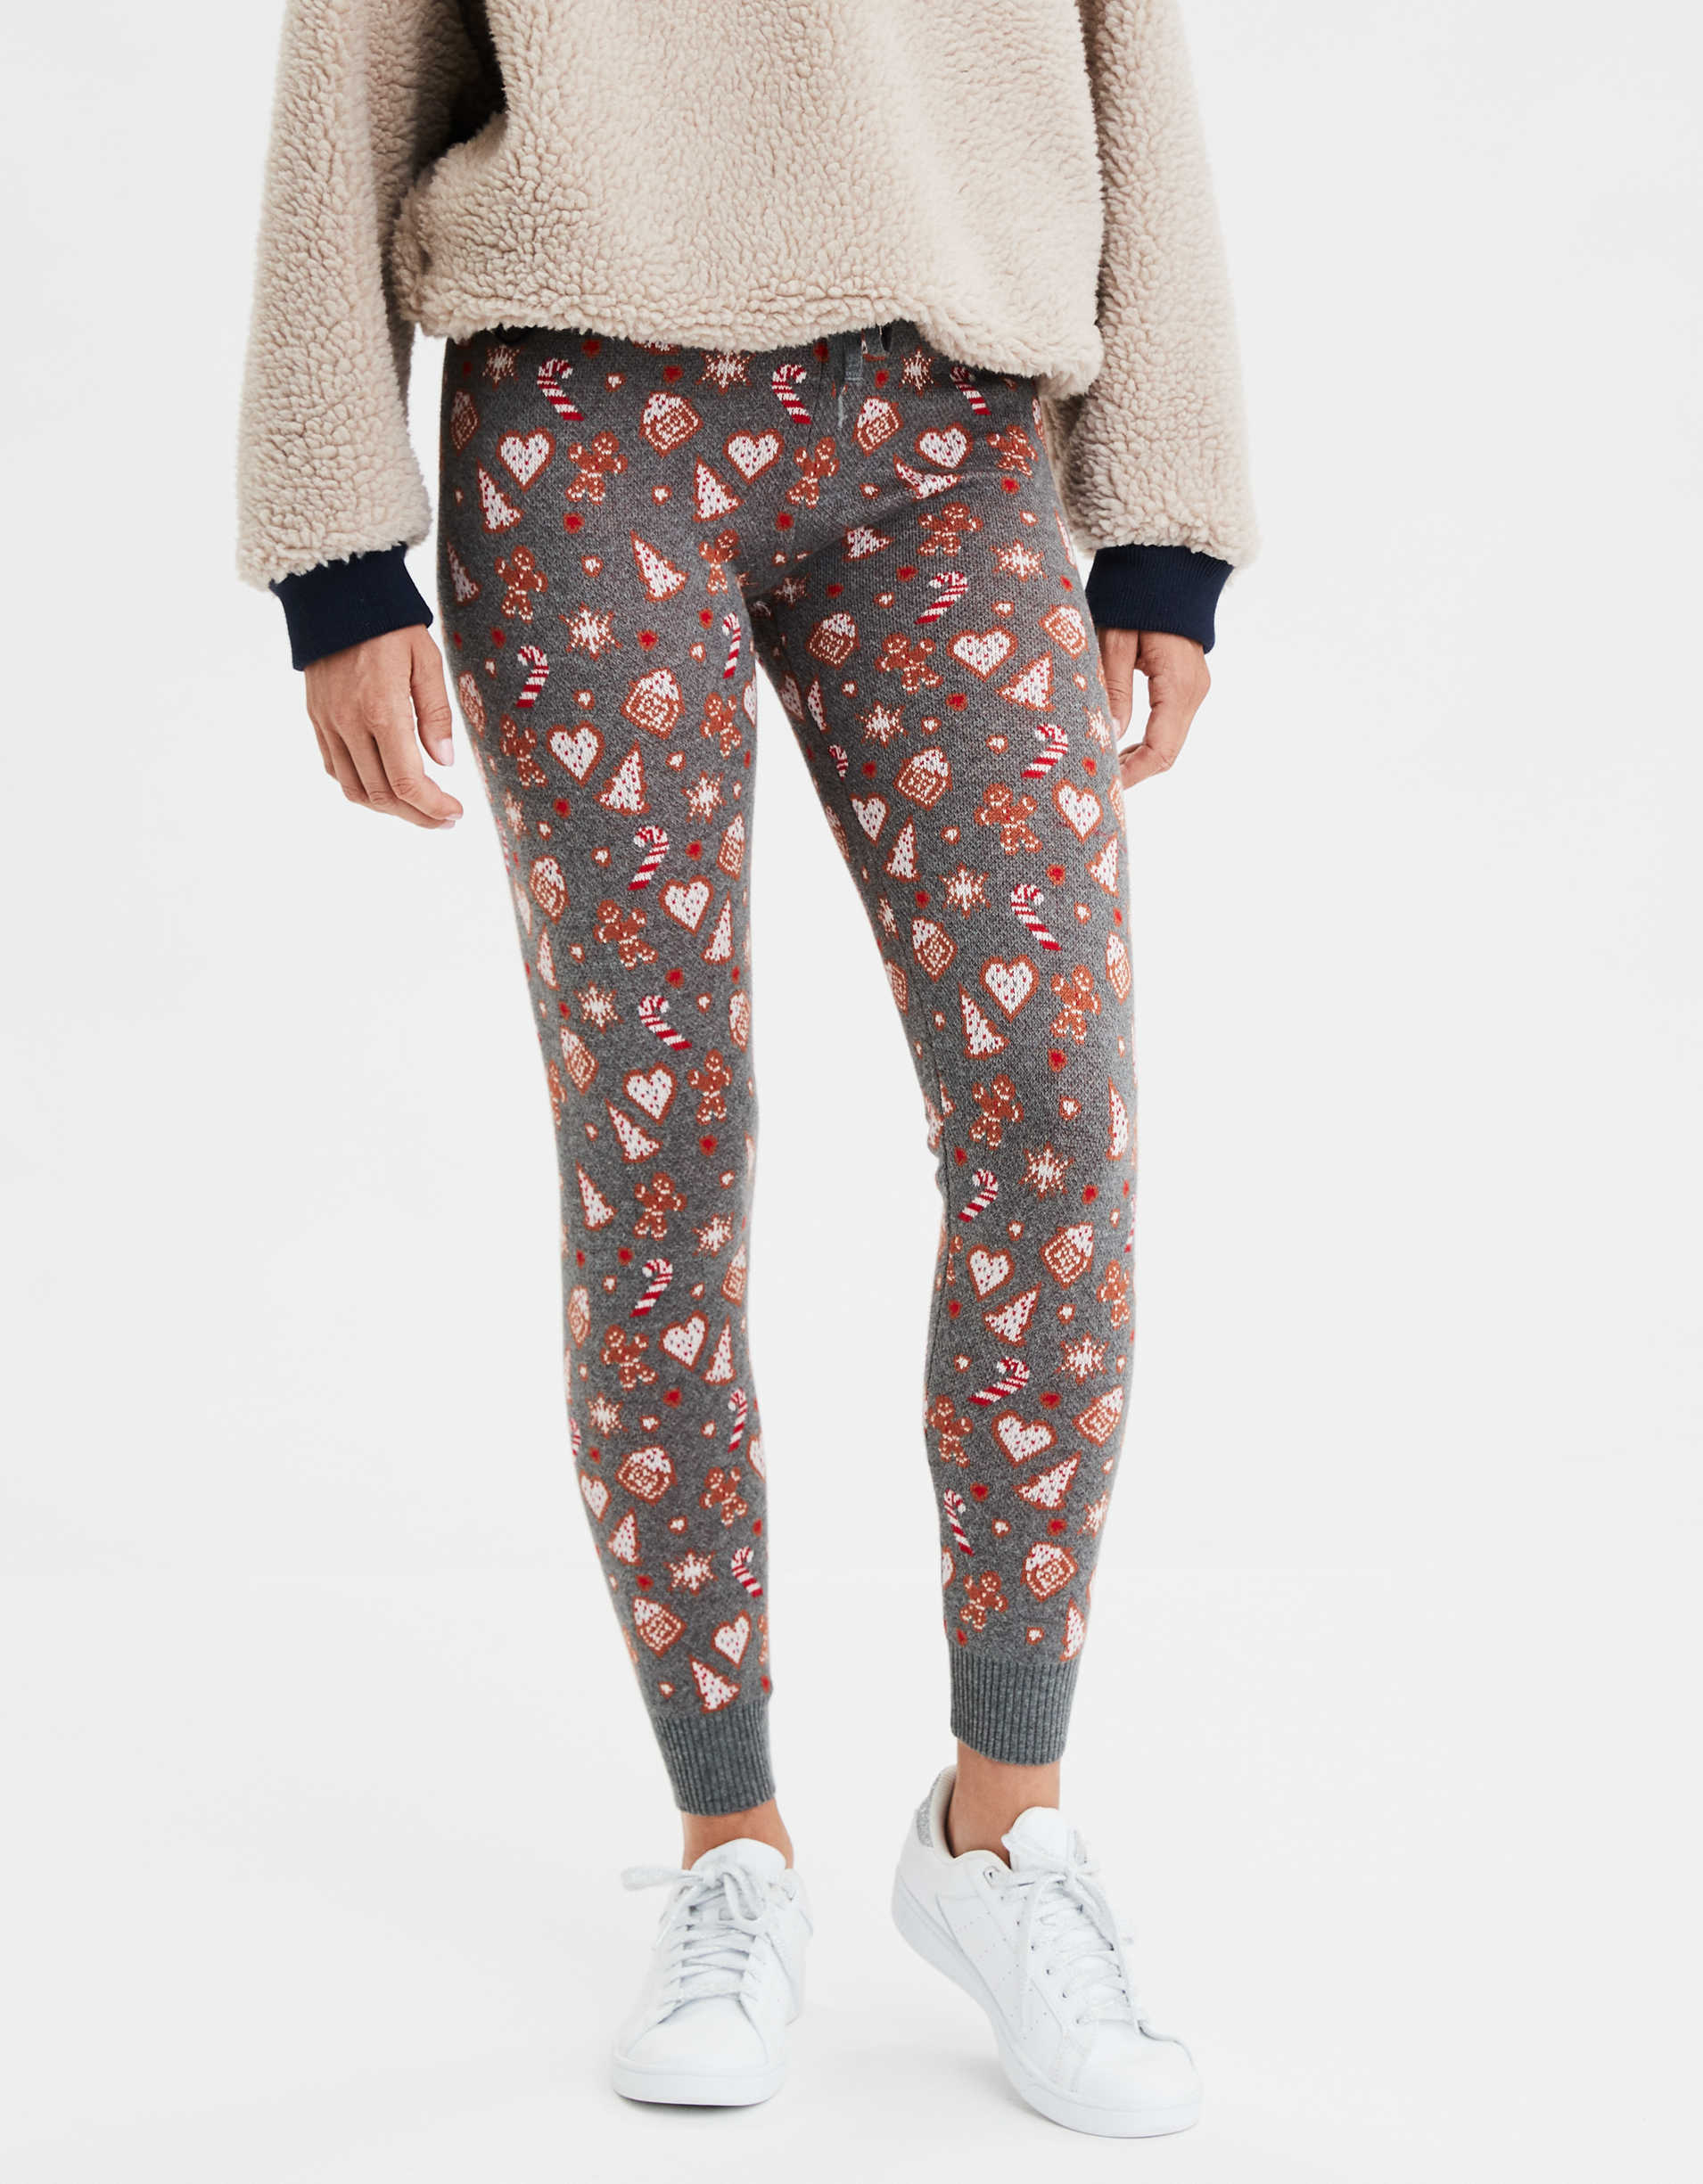 AEO Super High-Waisted Gingerbread Cookie Sweater Legging